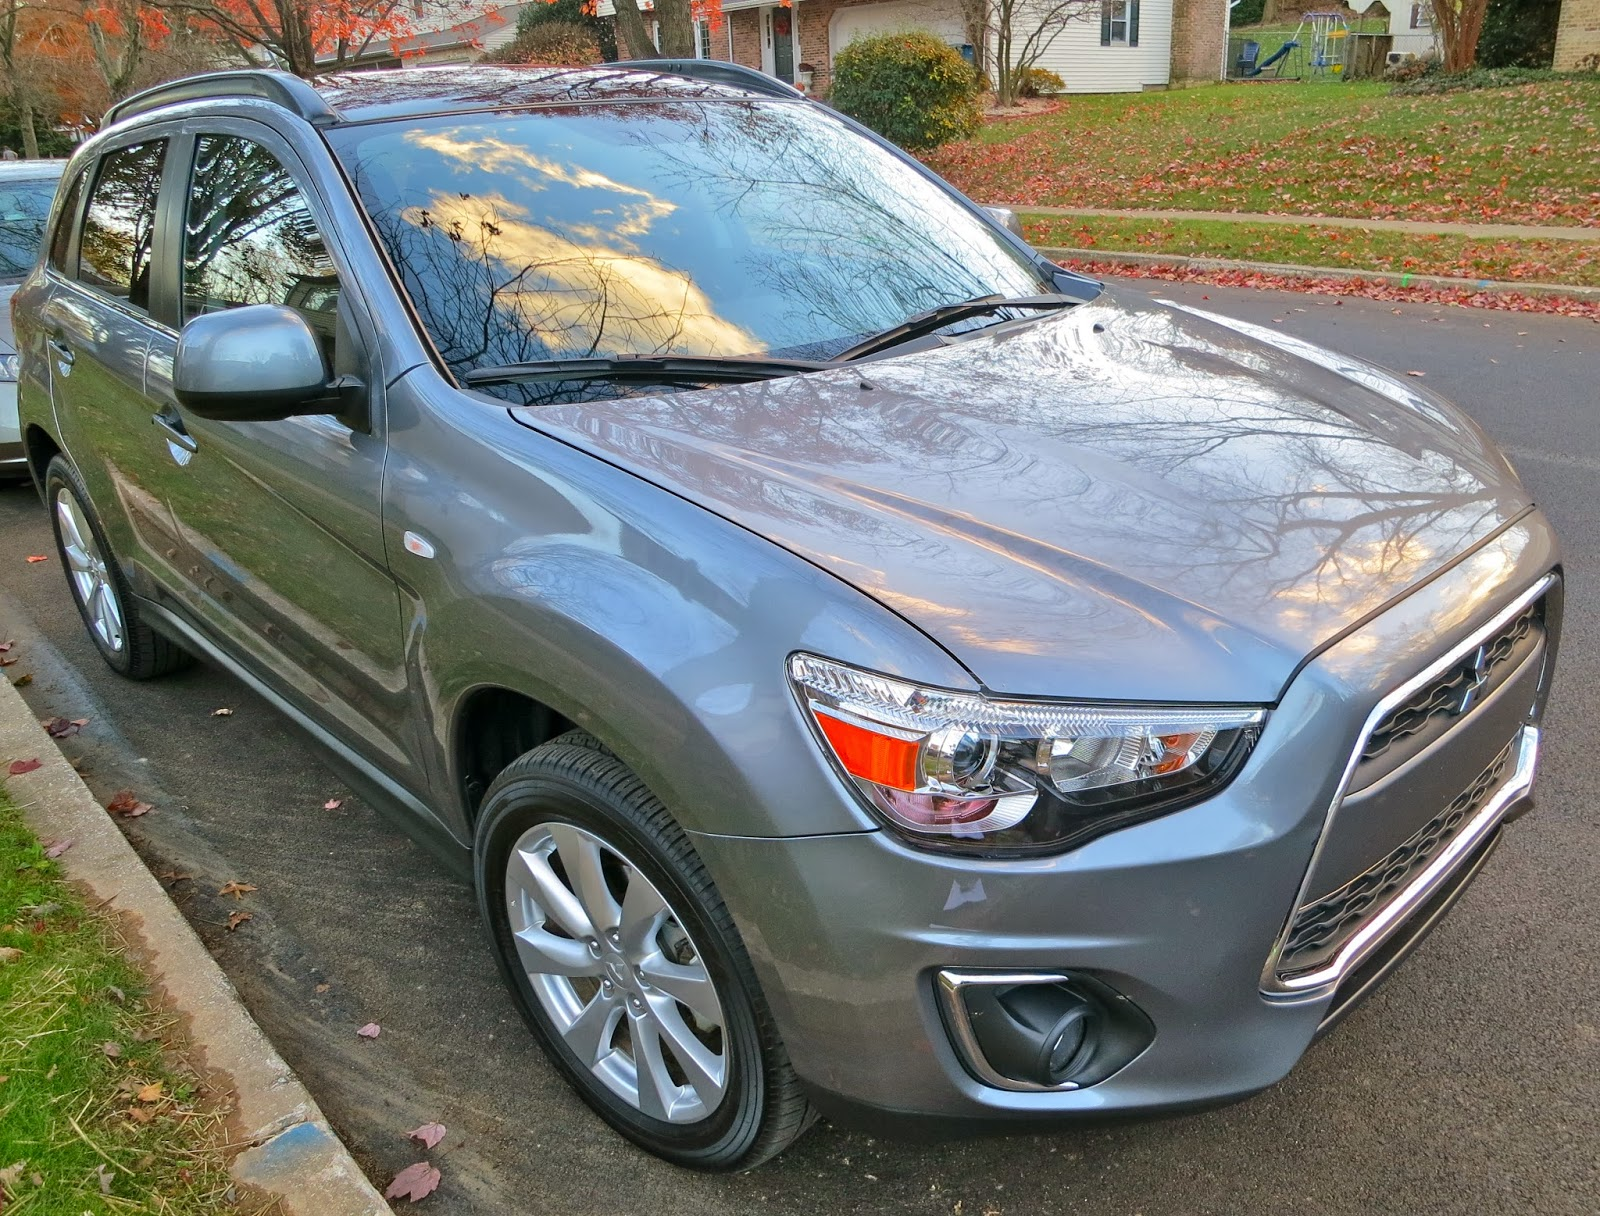 meet the 2013 mitsubishi outlander sport se a 4wd 4 door suv with a 20 l engine already i think shes pretty stylish but for those of you that cant - 2013 Mitsubishi Outlander Sport Se